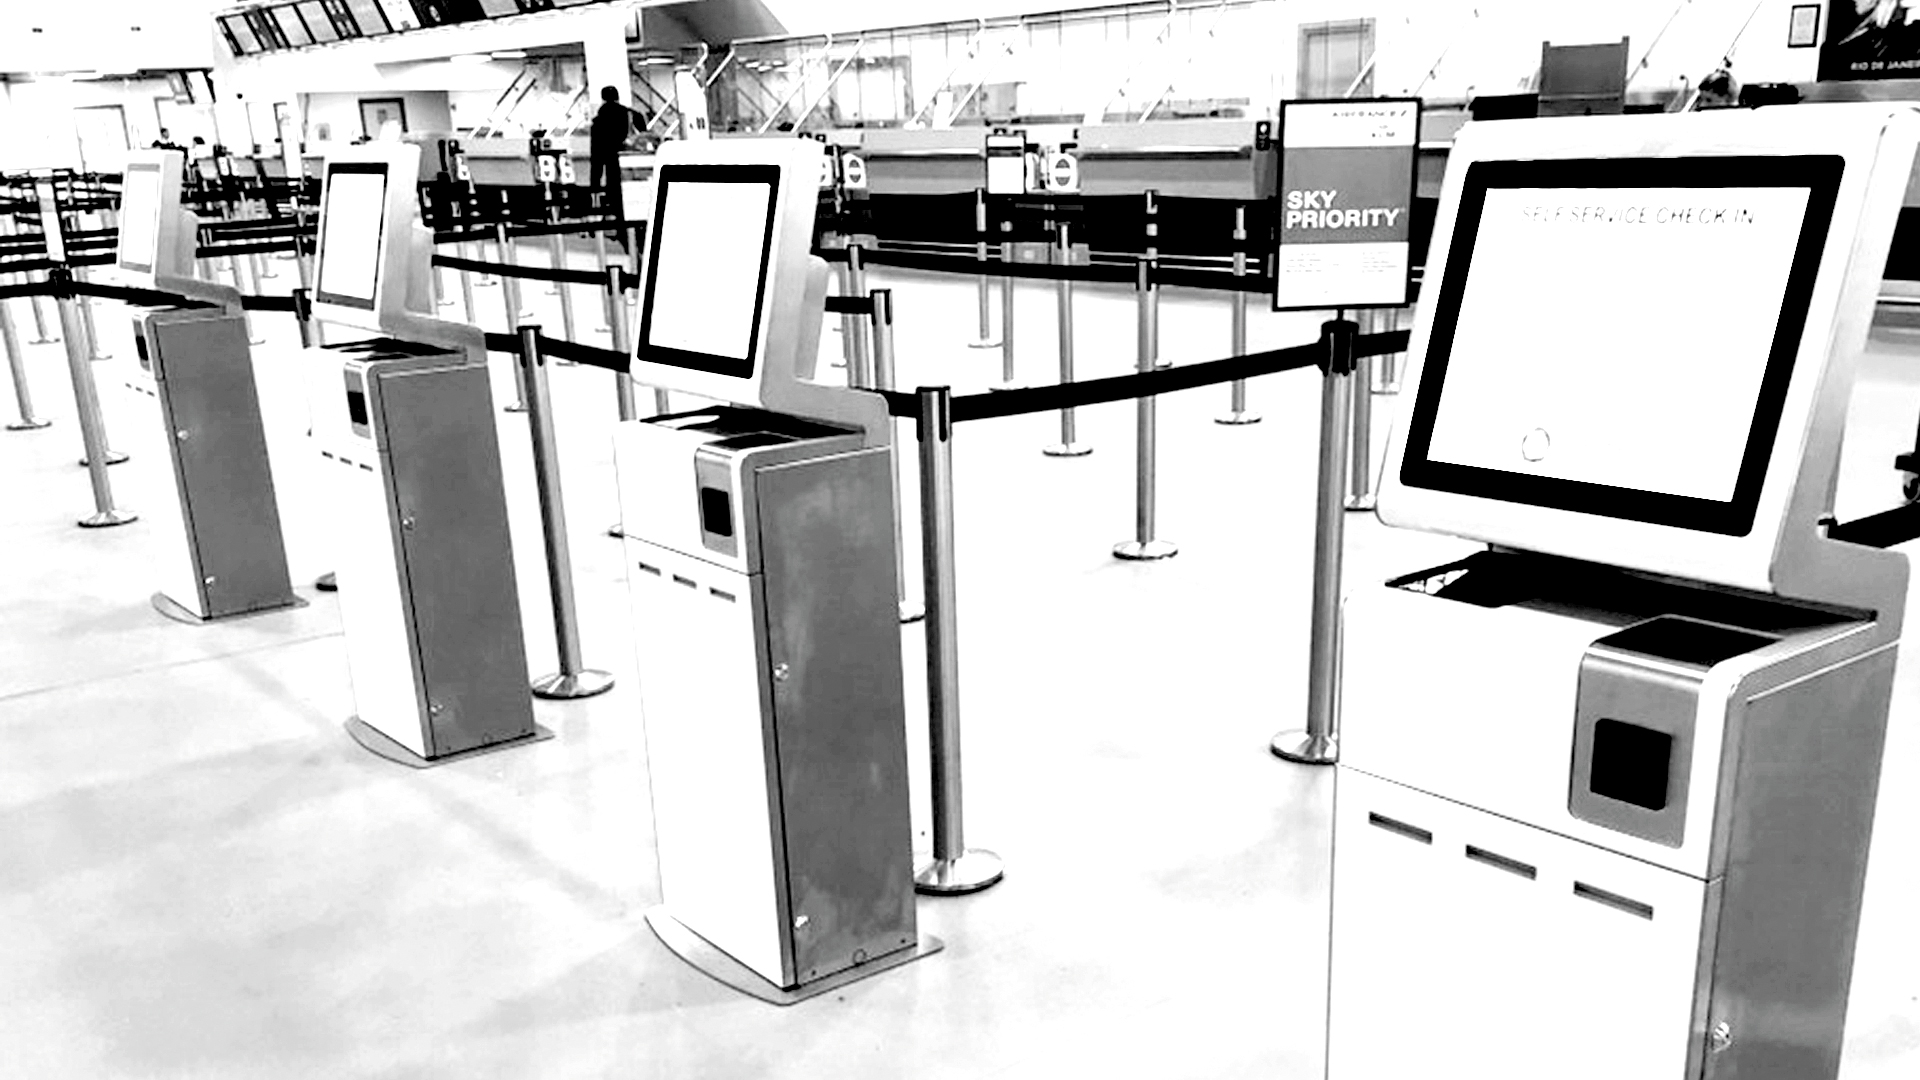 Self-Service Check-in Kiosks